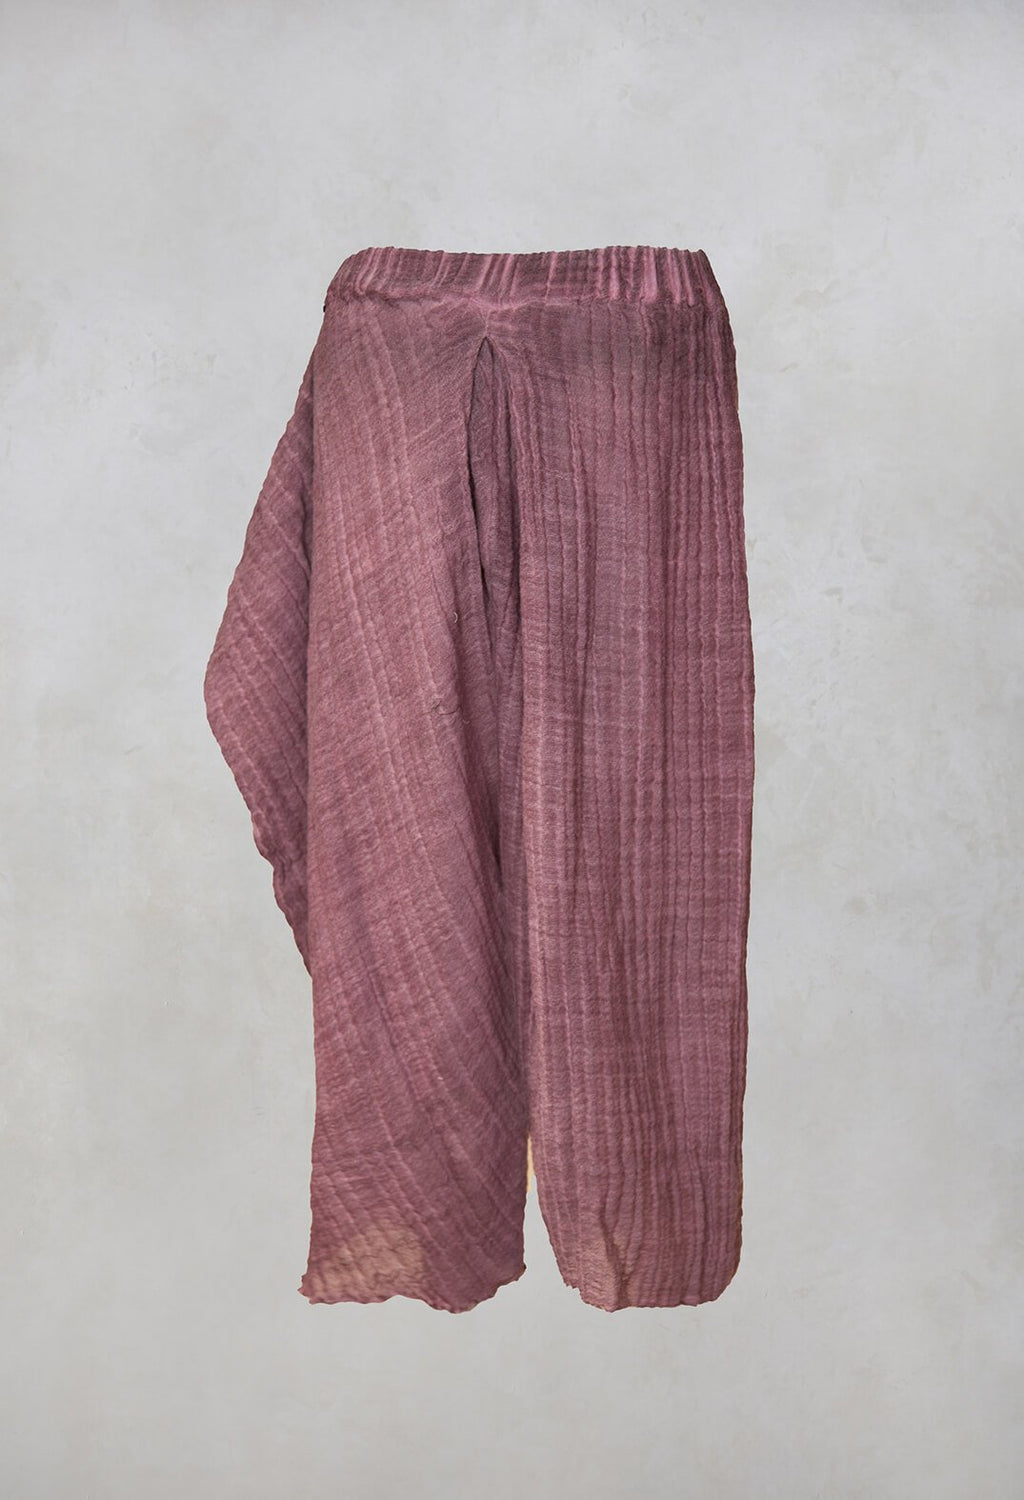 Susy Dyed Trousers in Wine